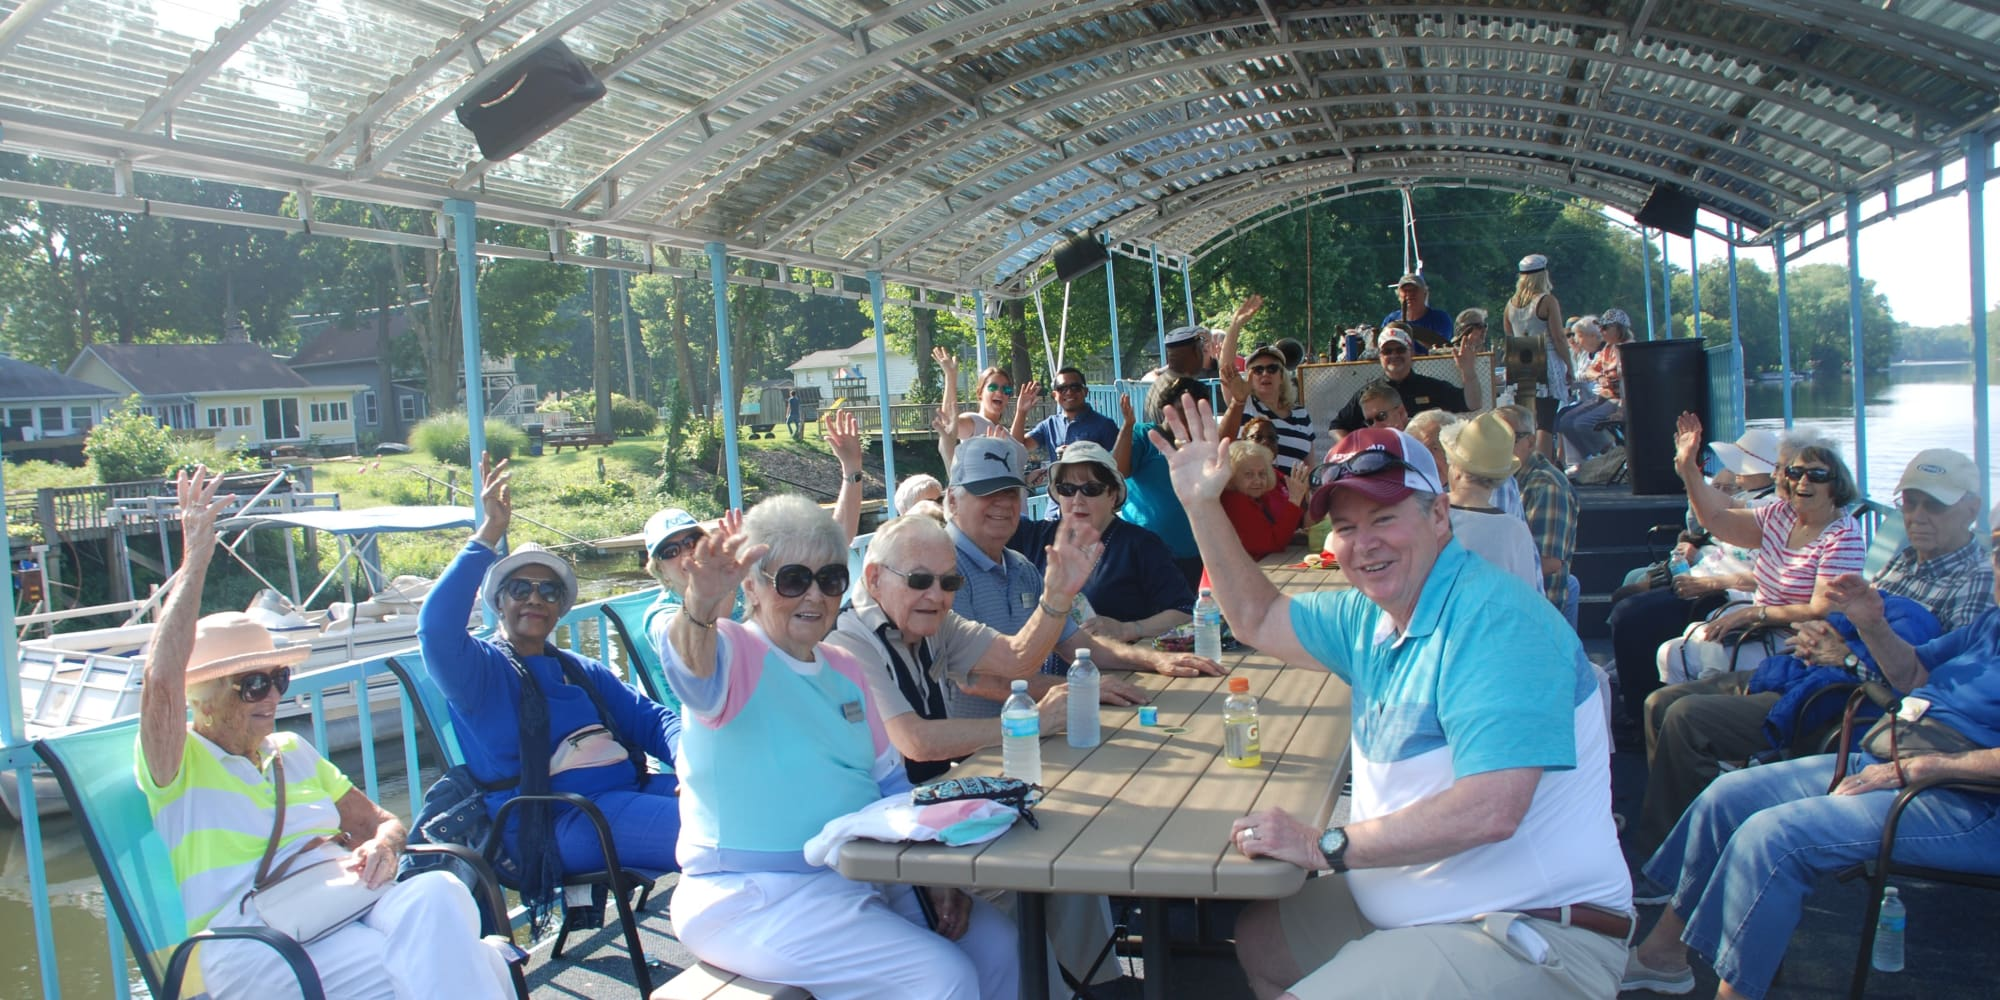 A group of residents from Ivy Creek Gracious Retirement Living in Glen Mills, Pennsylvania on a boat